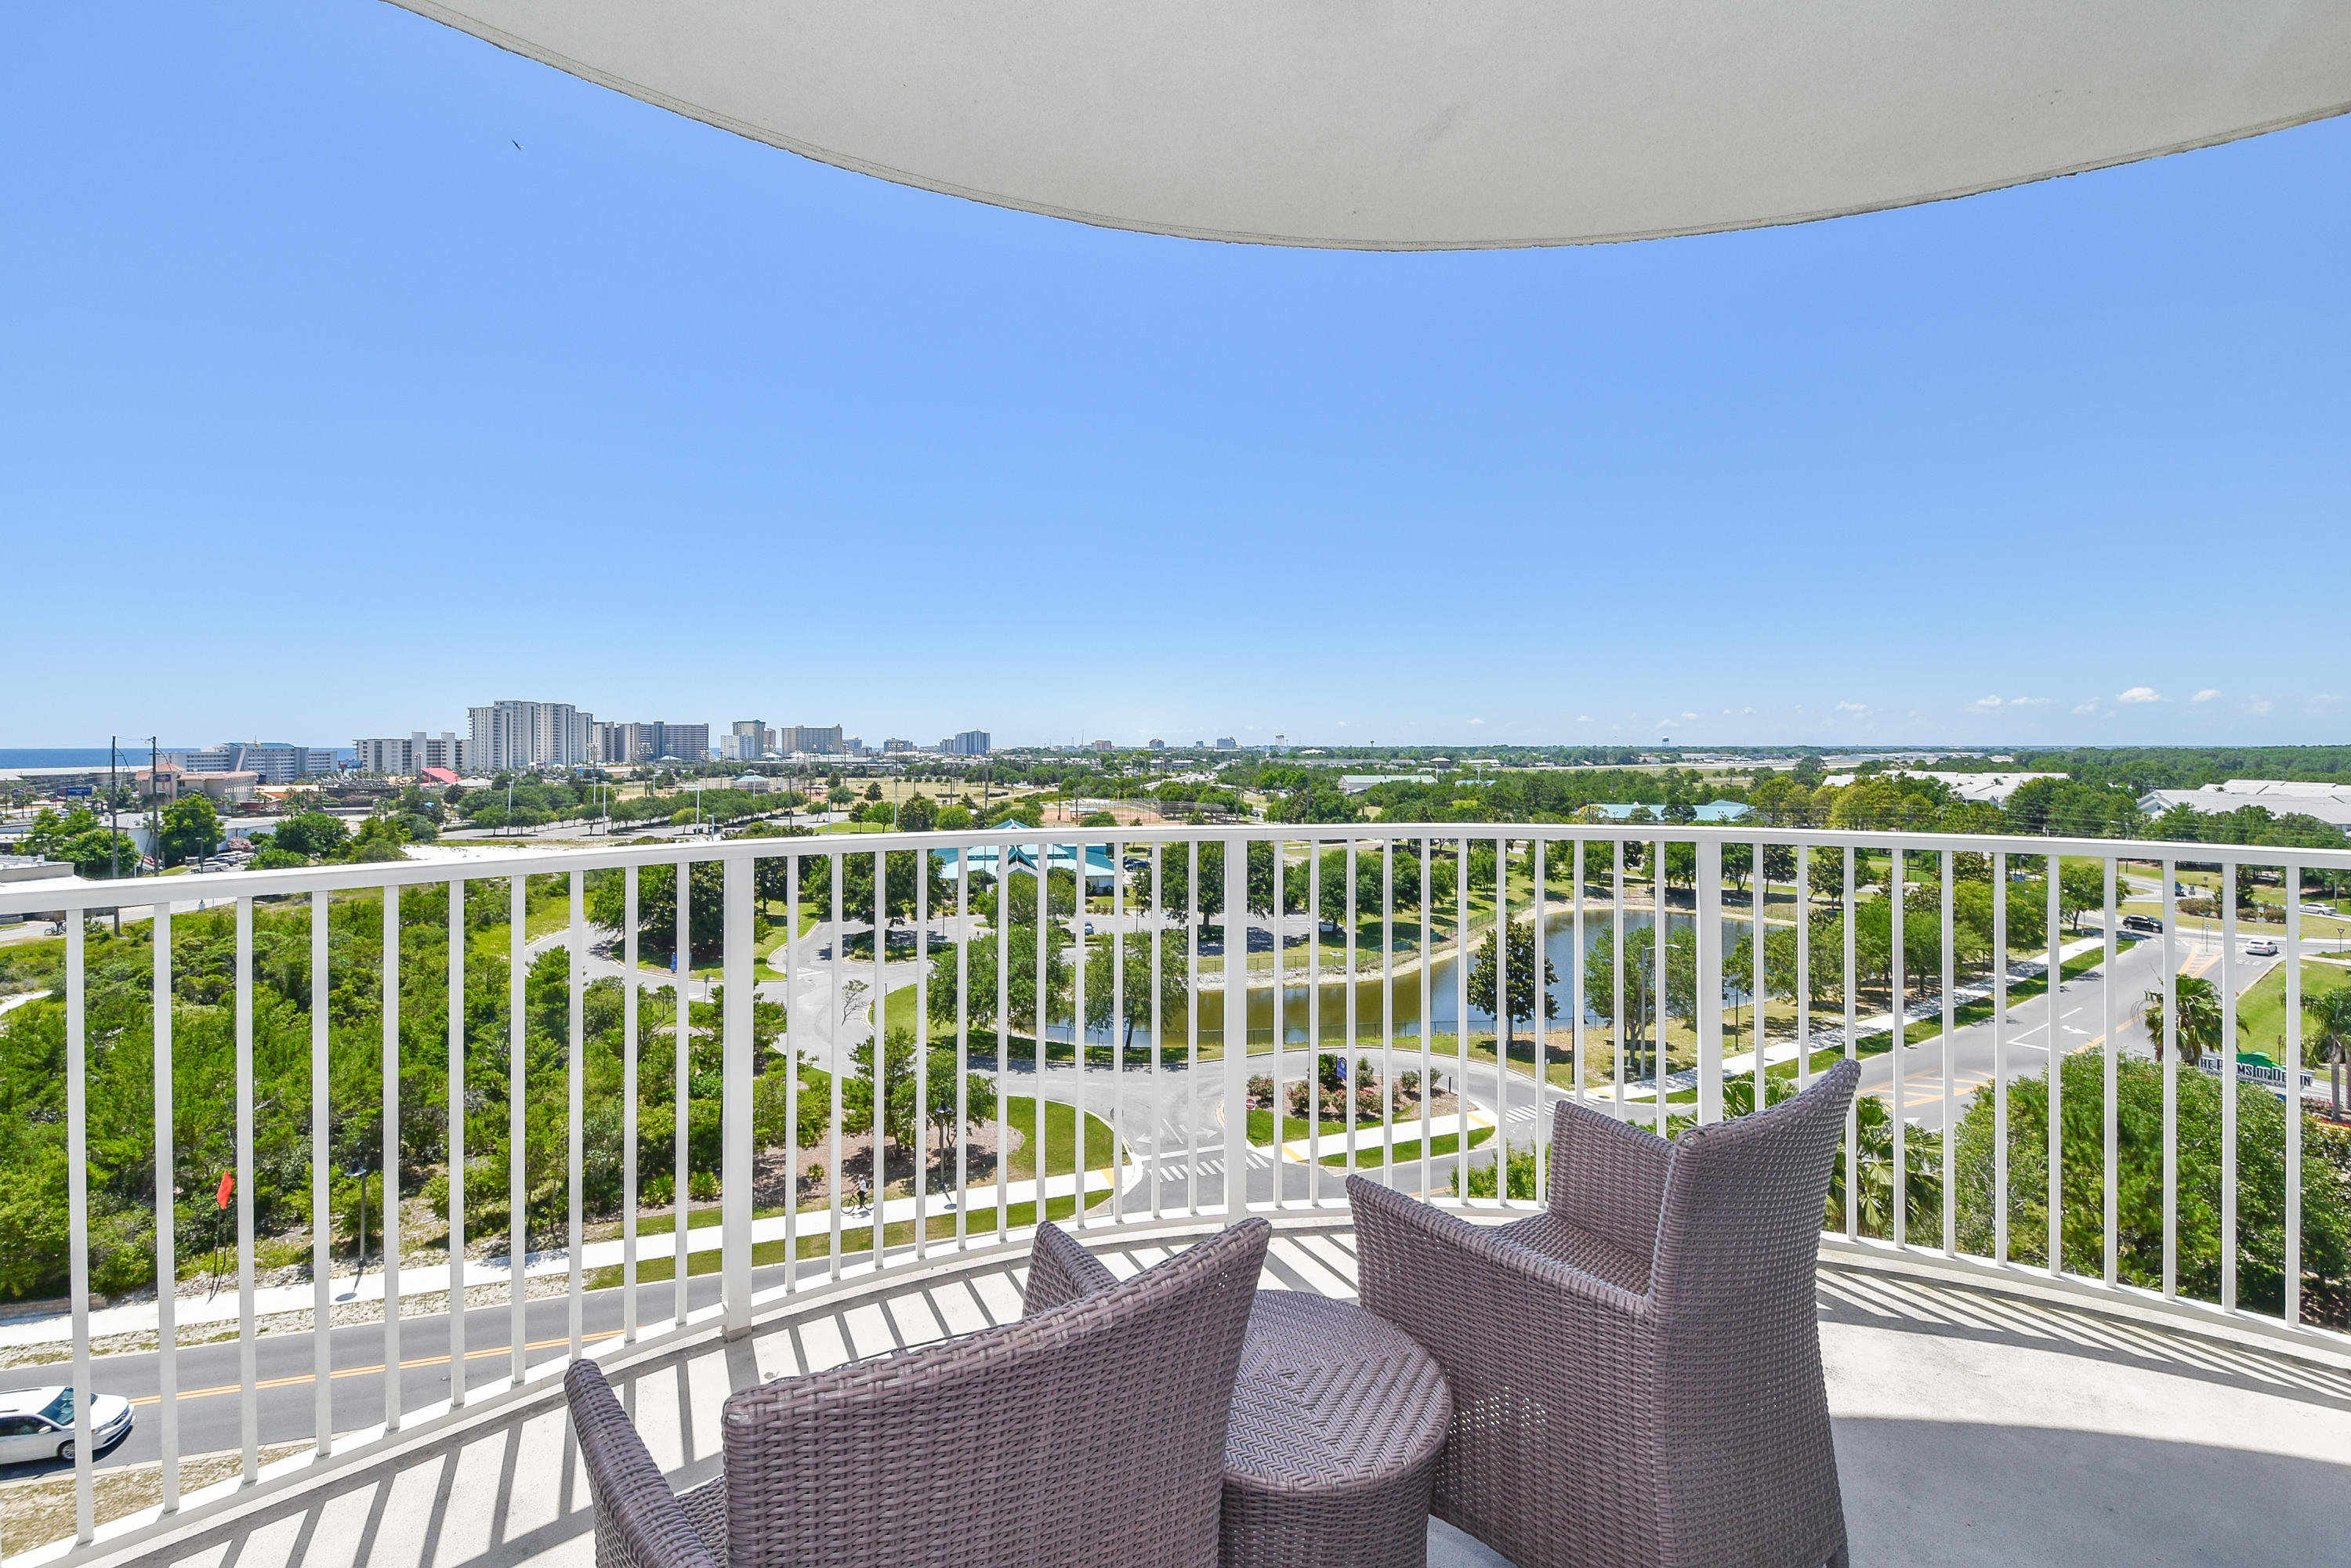 This westerly facing 8th floor junior two-bedroom condo offers an open concept living and dining area, as well as an inviting large balcony to enjoy views of the City of Destin. The lagoon pool and water features are the resort's crowning attractions. Onsite amenities include multiple pools with waterfall features, a hot tub, playground, fitness center, and tennis and basketball courts. Also, newly added, is an on-site restaurant offering lunch, dinner, room service and even in-season poolside service.  Shuttle service to the June White Decker Public Beach access is offered in-season. All utilities are included in HOA dues - water, sewer, electric, cable, WiFi, phone, trash! Excellent opportunity for a vacation rental, second or primary home.